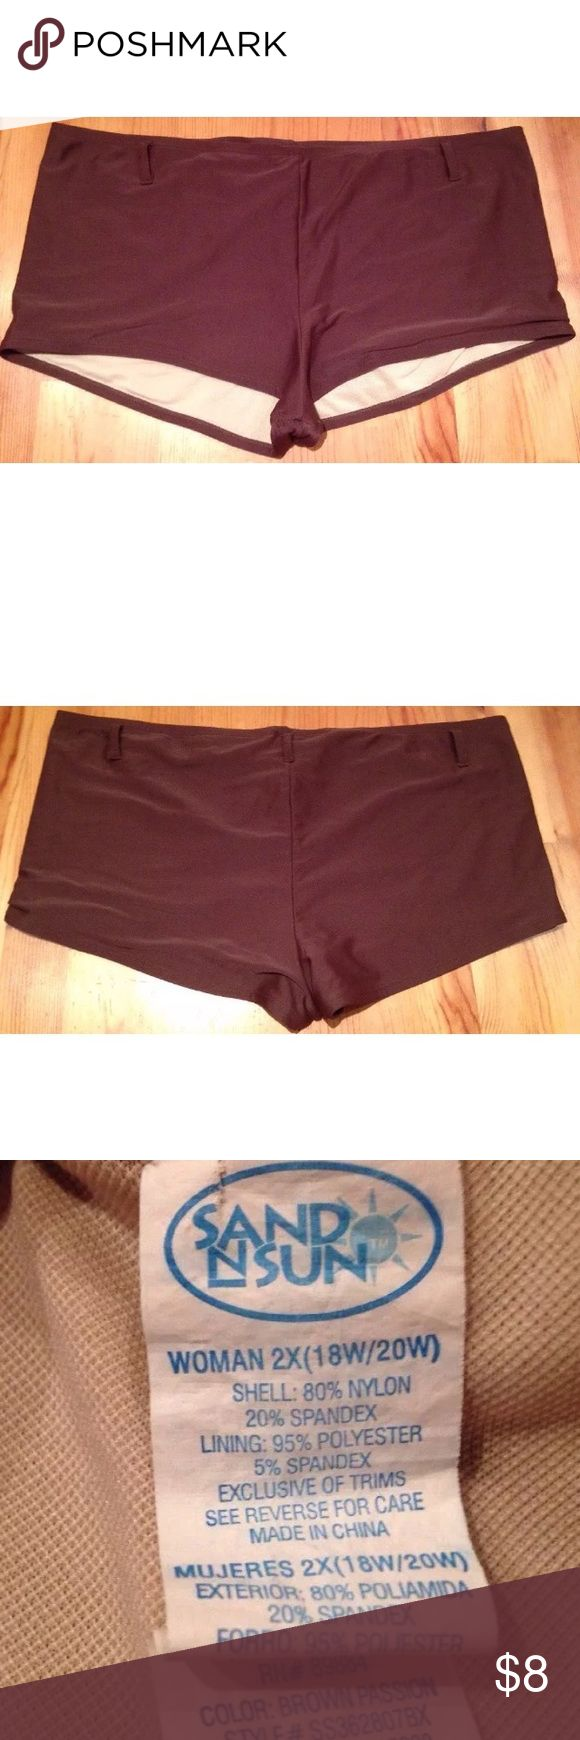 BROWN TANKINI SHORT SWIM BOTTOMS Women's 2X 18W Excellent condition pre-owned brown boy short tankini swim bottoms by SAND N SUN! Size women's plus 2X (18W-20W). Material: Shell 80% nylon, 20% spandex and lining 95% polyester/5% spandex. Has belt loops...CUTE to run a bandana through belt loops! SAND & SUN Swim